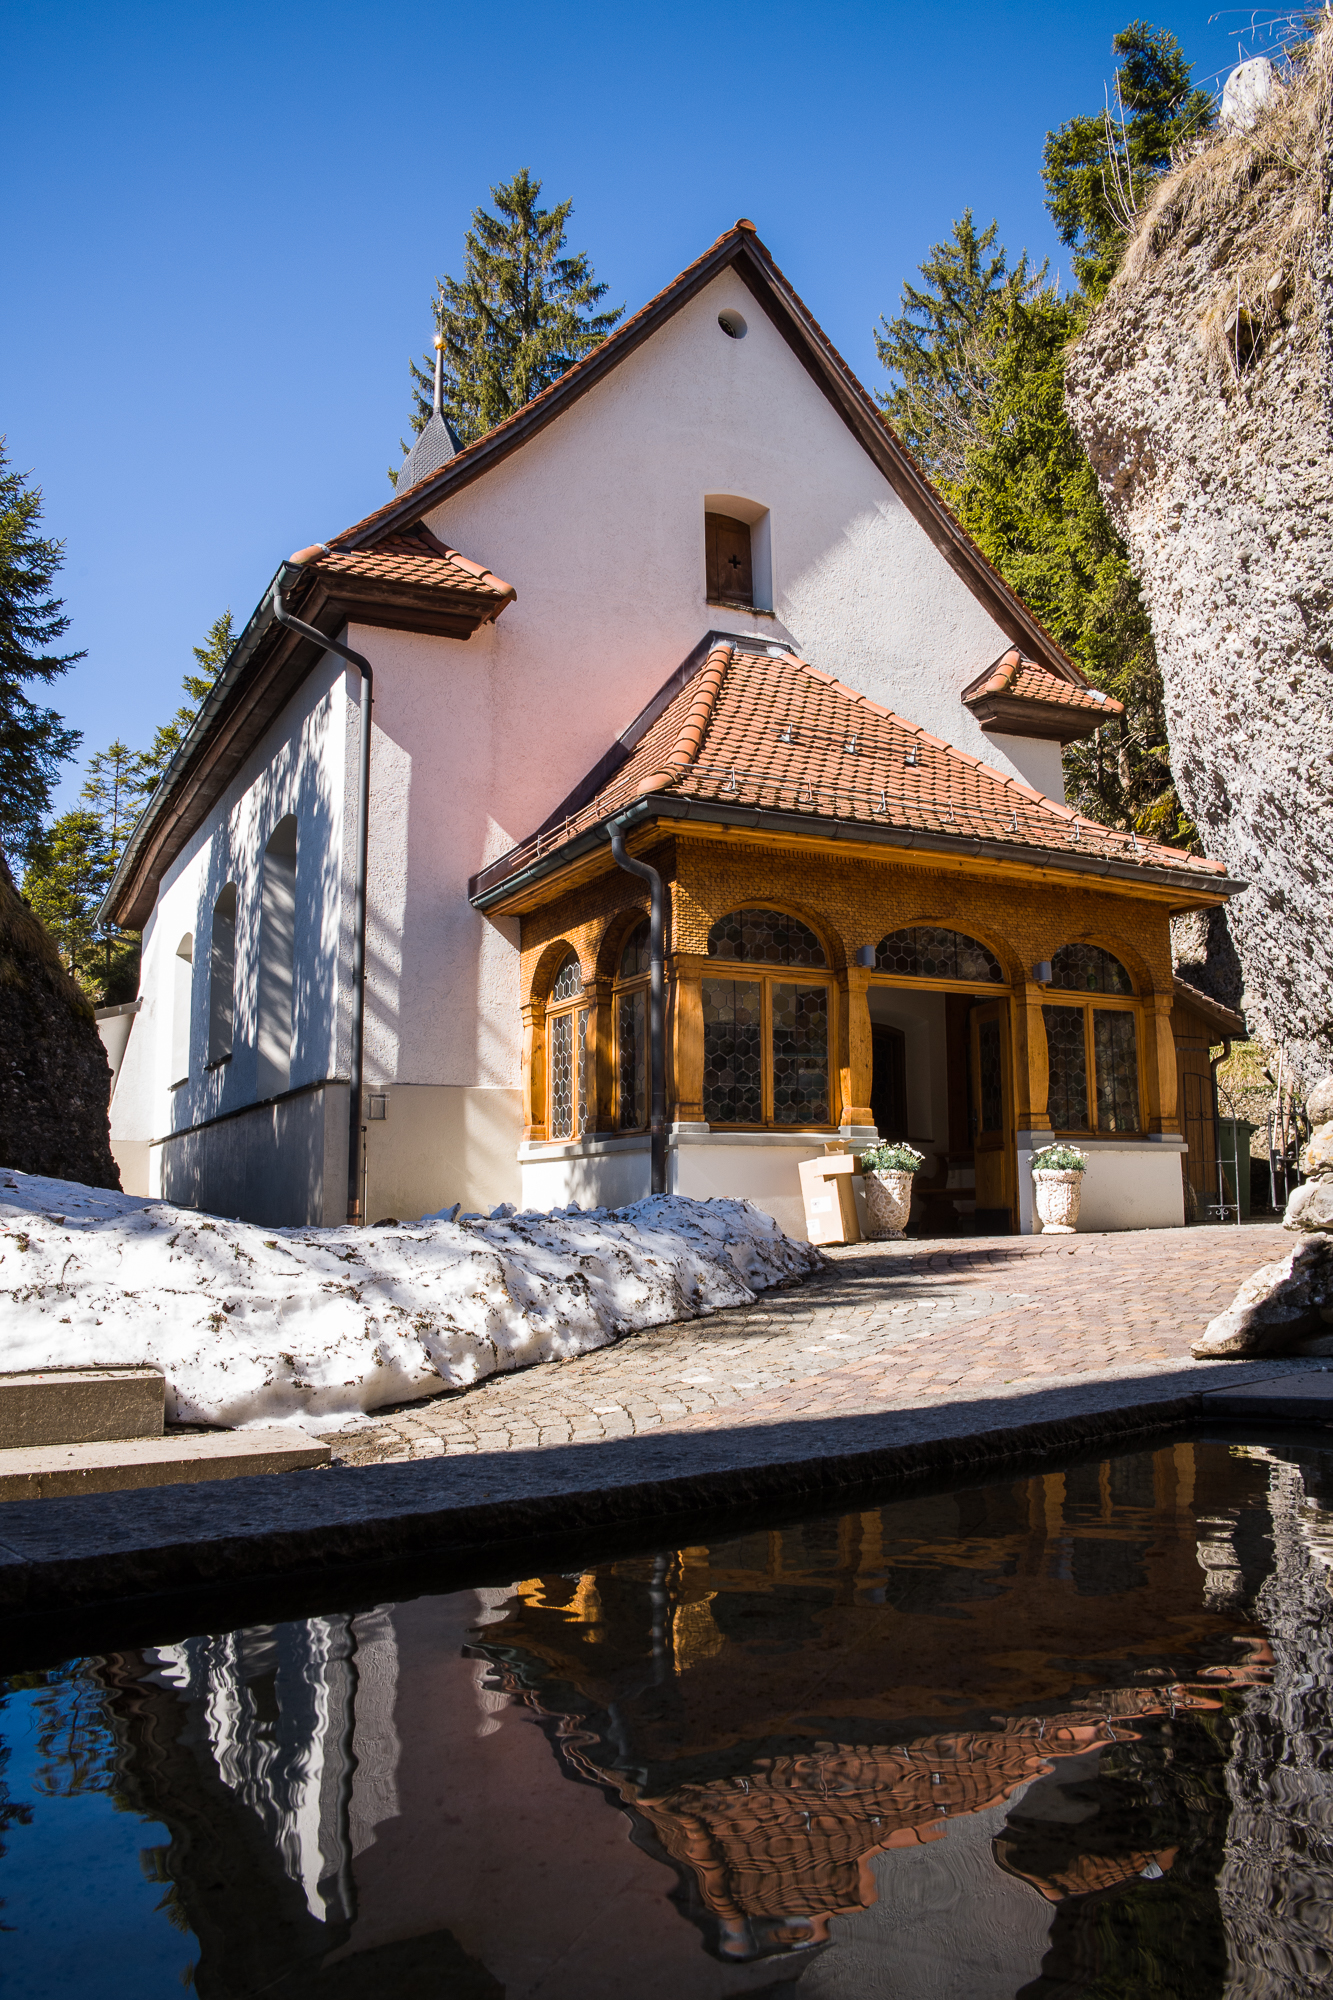 The Rigi Kaltbad chapel reflection in the spring flowing from the ancient riverbed